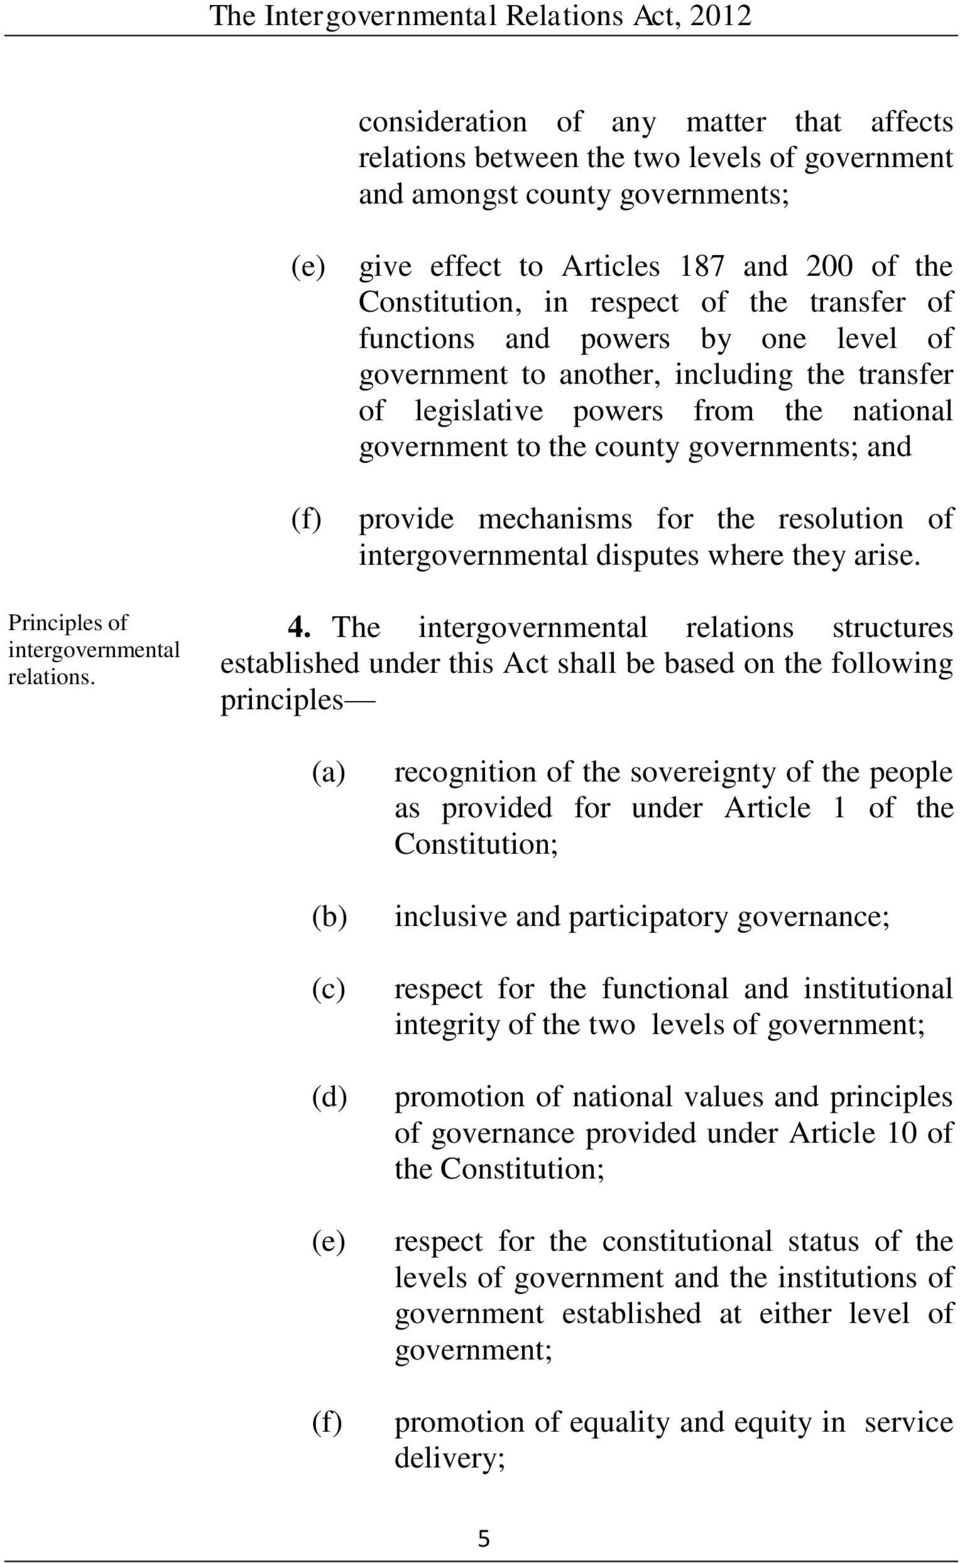 for the resolution of intergovernmental disputes where they arise. Principles of intergovernmental relations. 4.